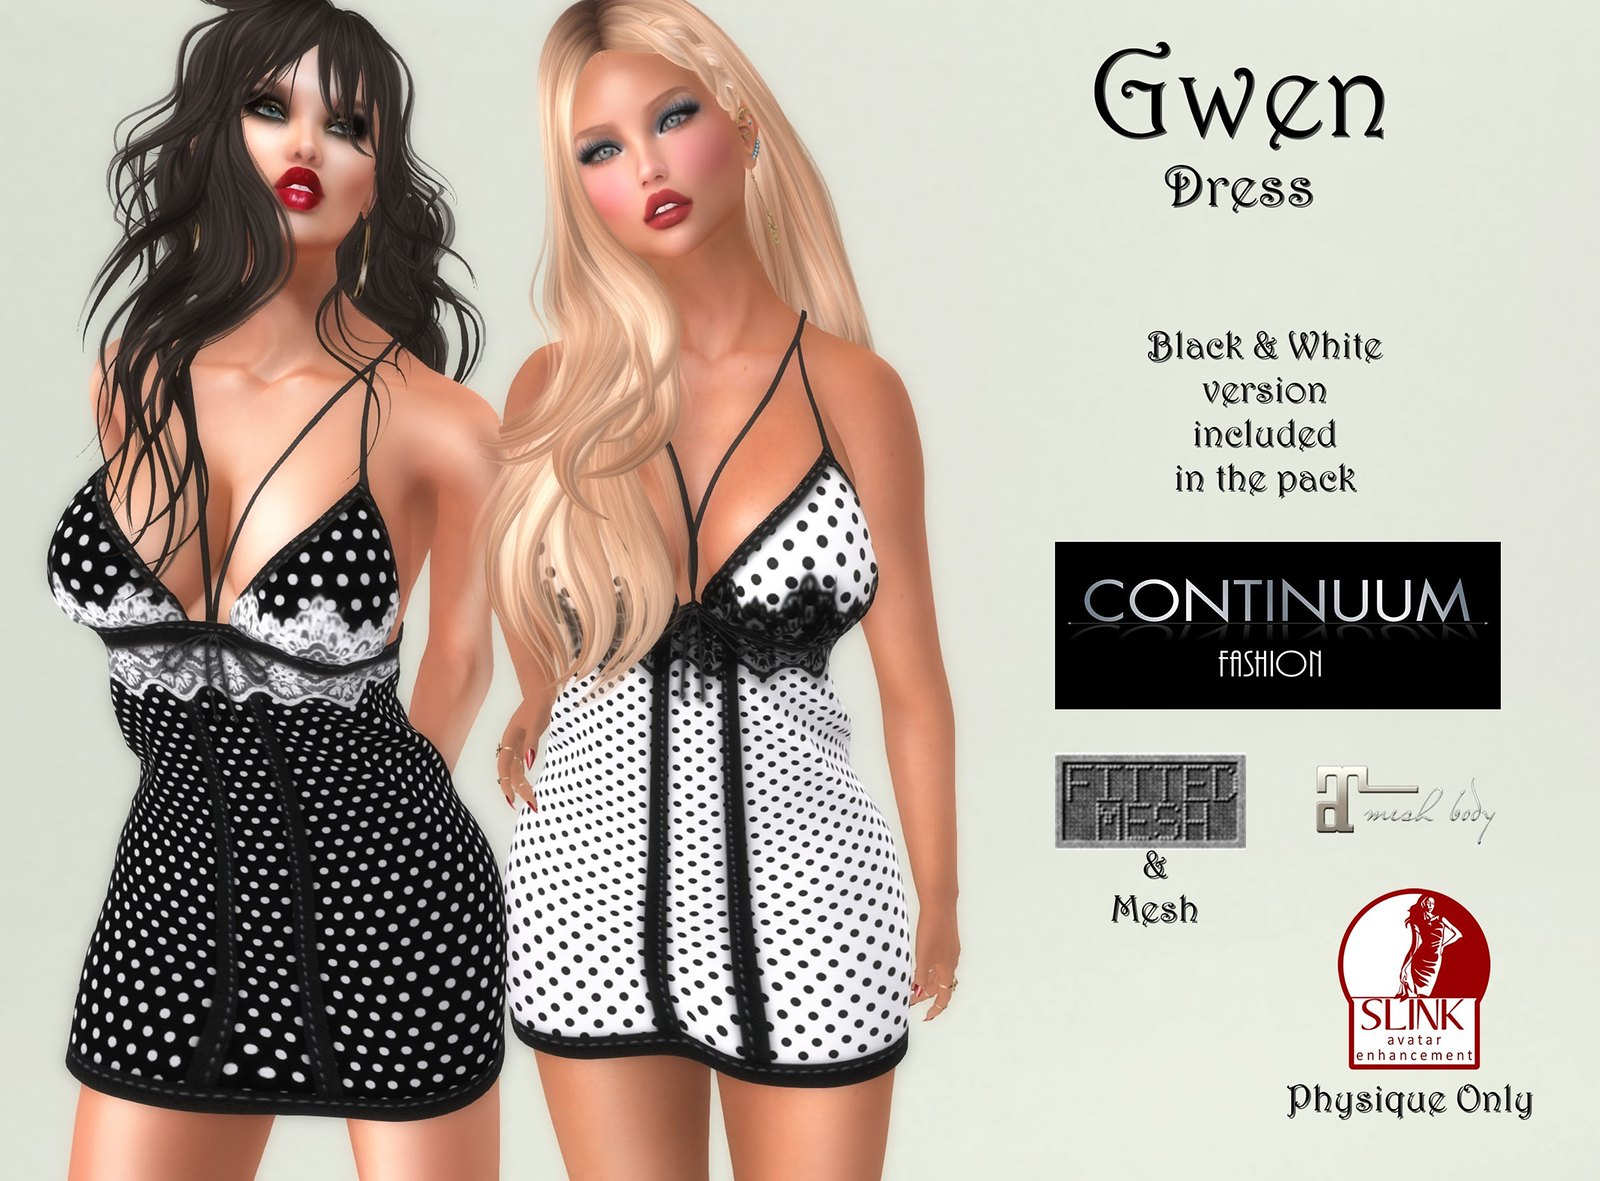 Continuum - Gwen Dress Black & White Pack